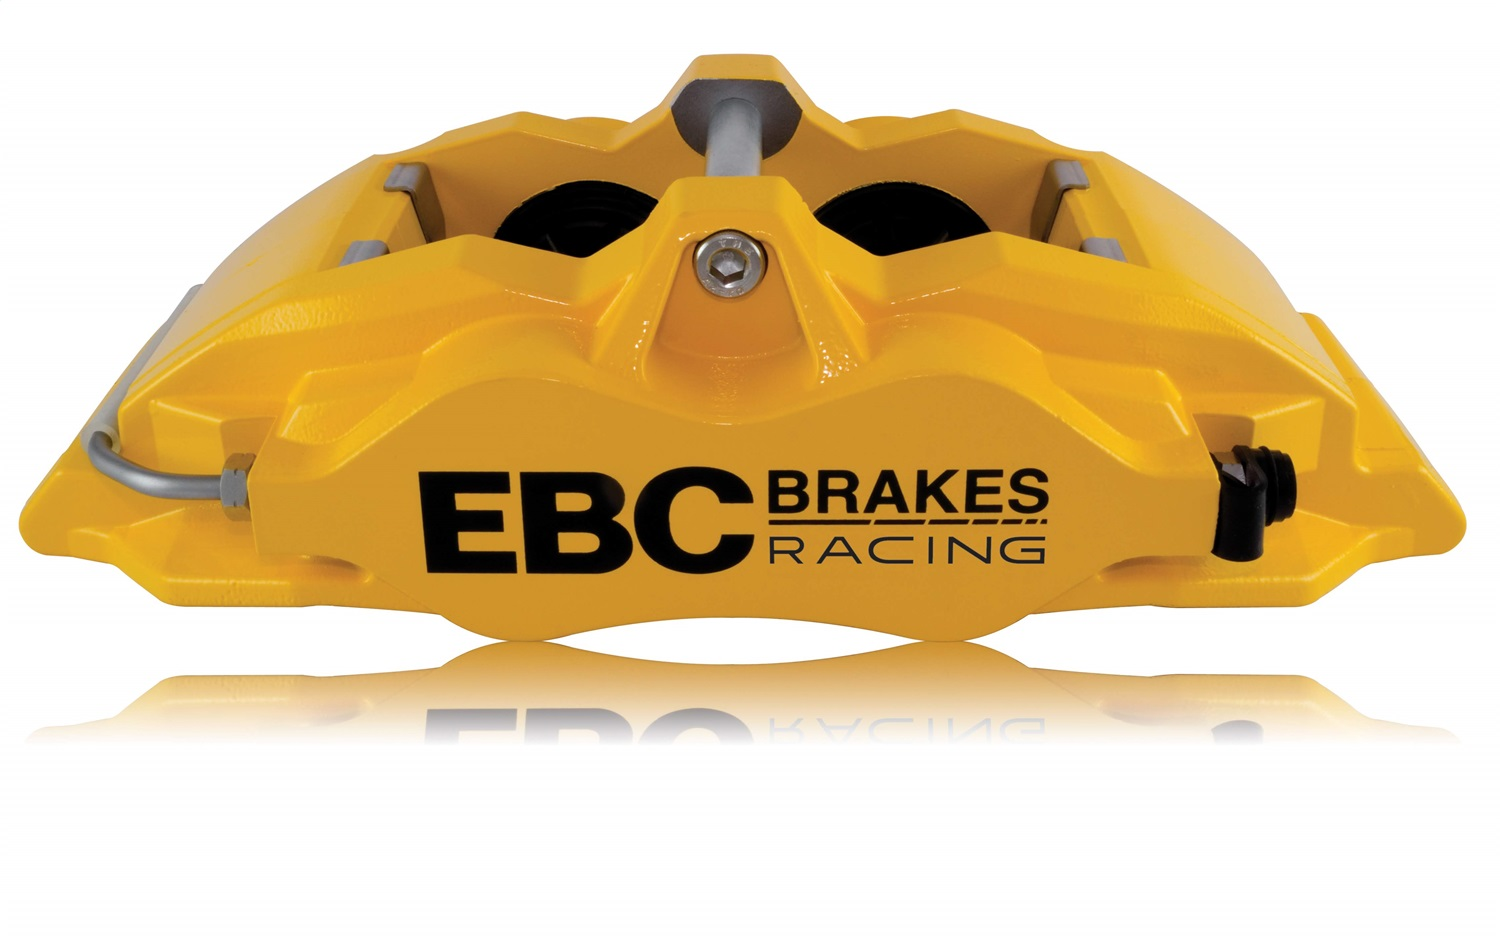 EBC Brakes BC4101YEL-R Apollo-4 Brake Calipers Fits 14-17 Fiesta